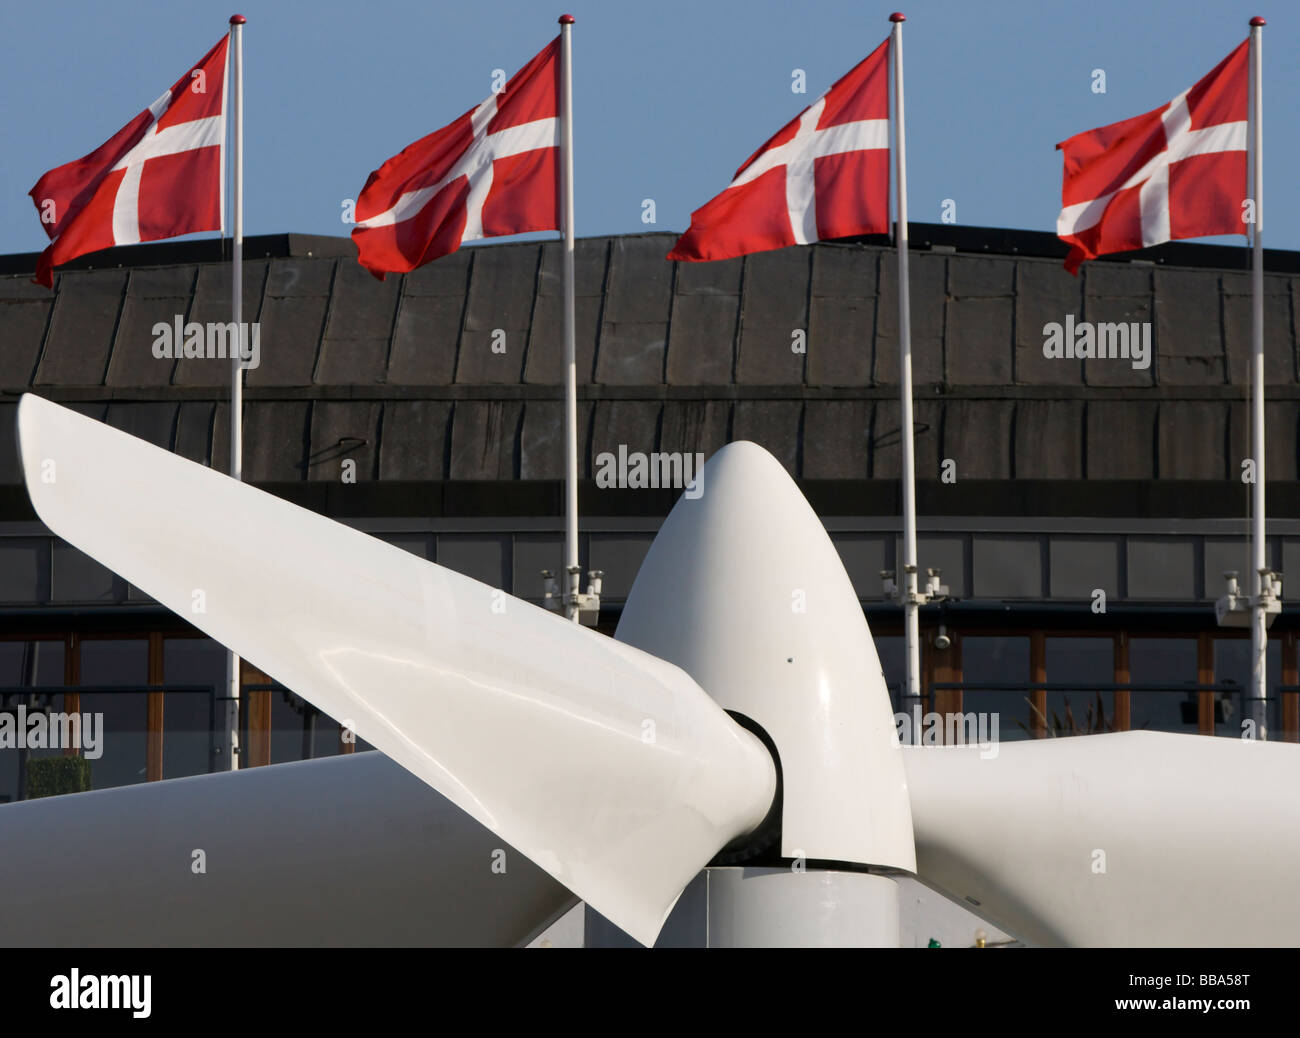 Tivoli Gardens in Copenhagen has placed a Vesta wind turbine in front of the Concert Hall this summer. - Stock Image